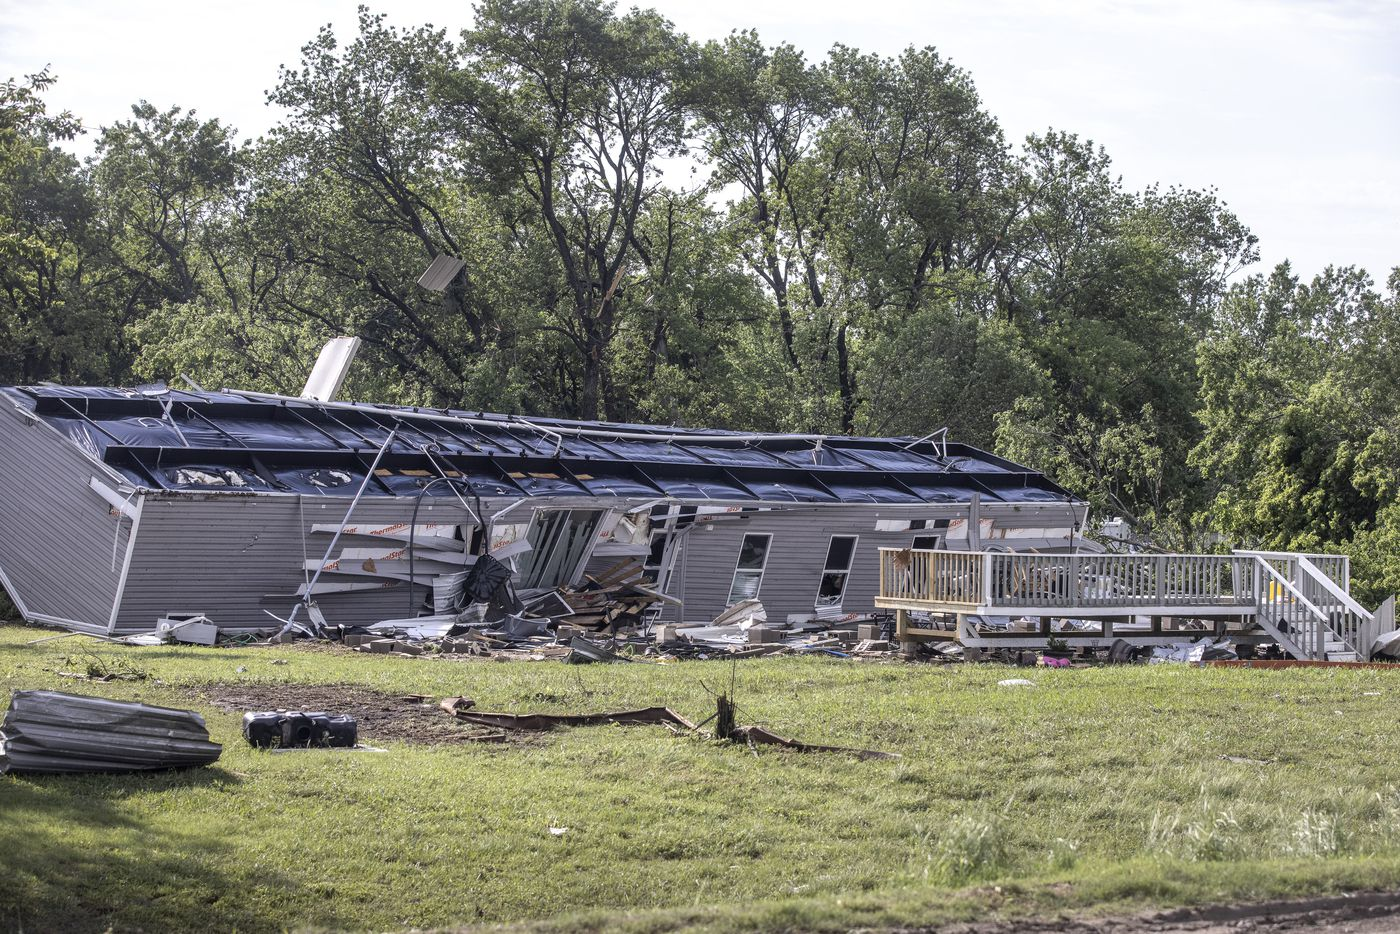 A mobile home was turned upside down in the aftermath of a Monday night tornado that touched down just south of in Waxahachie, Texas, on Tuesday, May 4, 2021. (Lynda M. González/The Dallas Morning News)